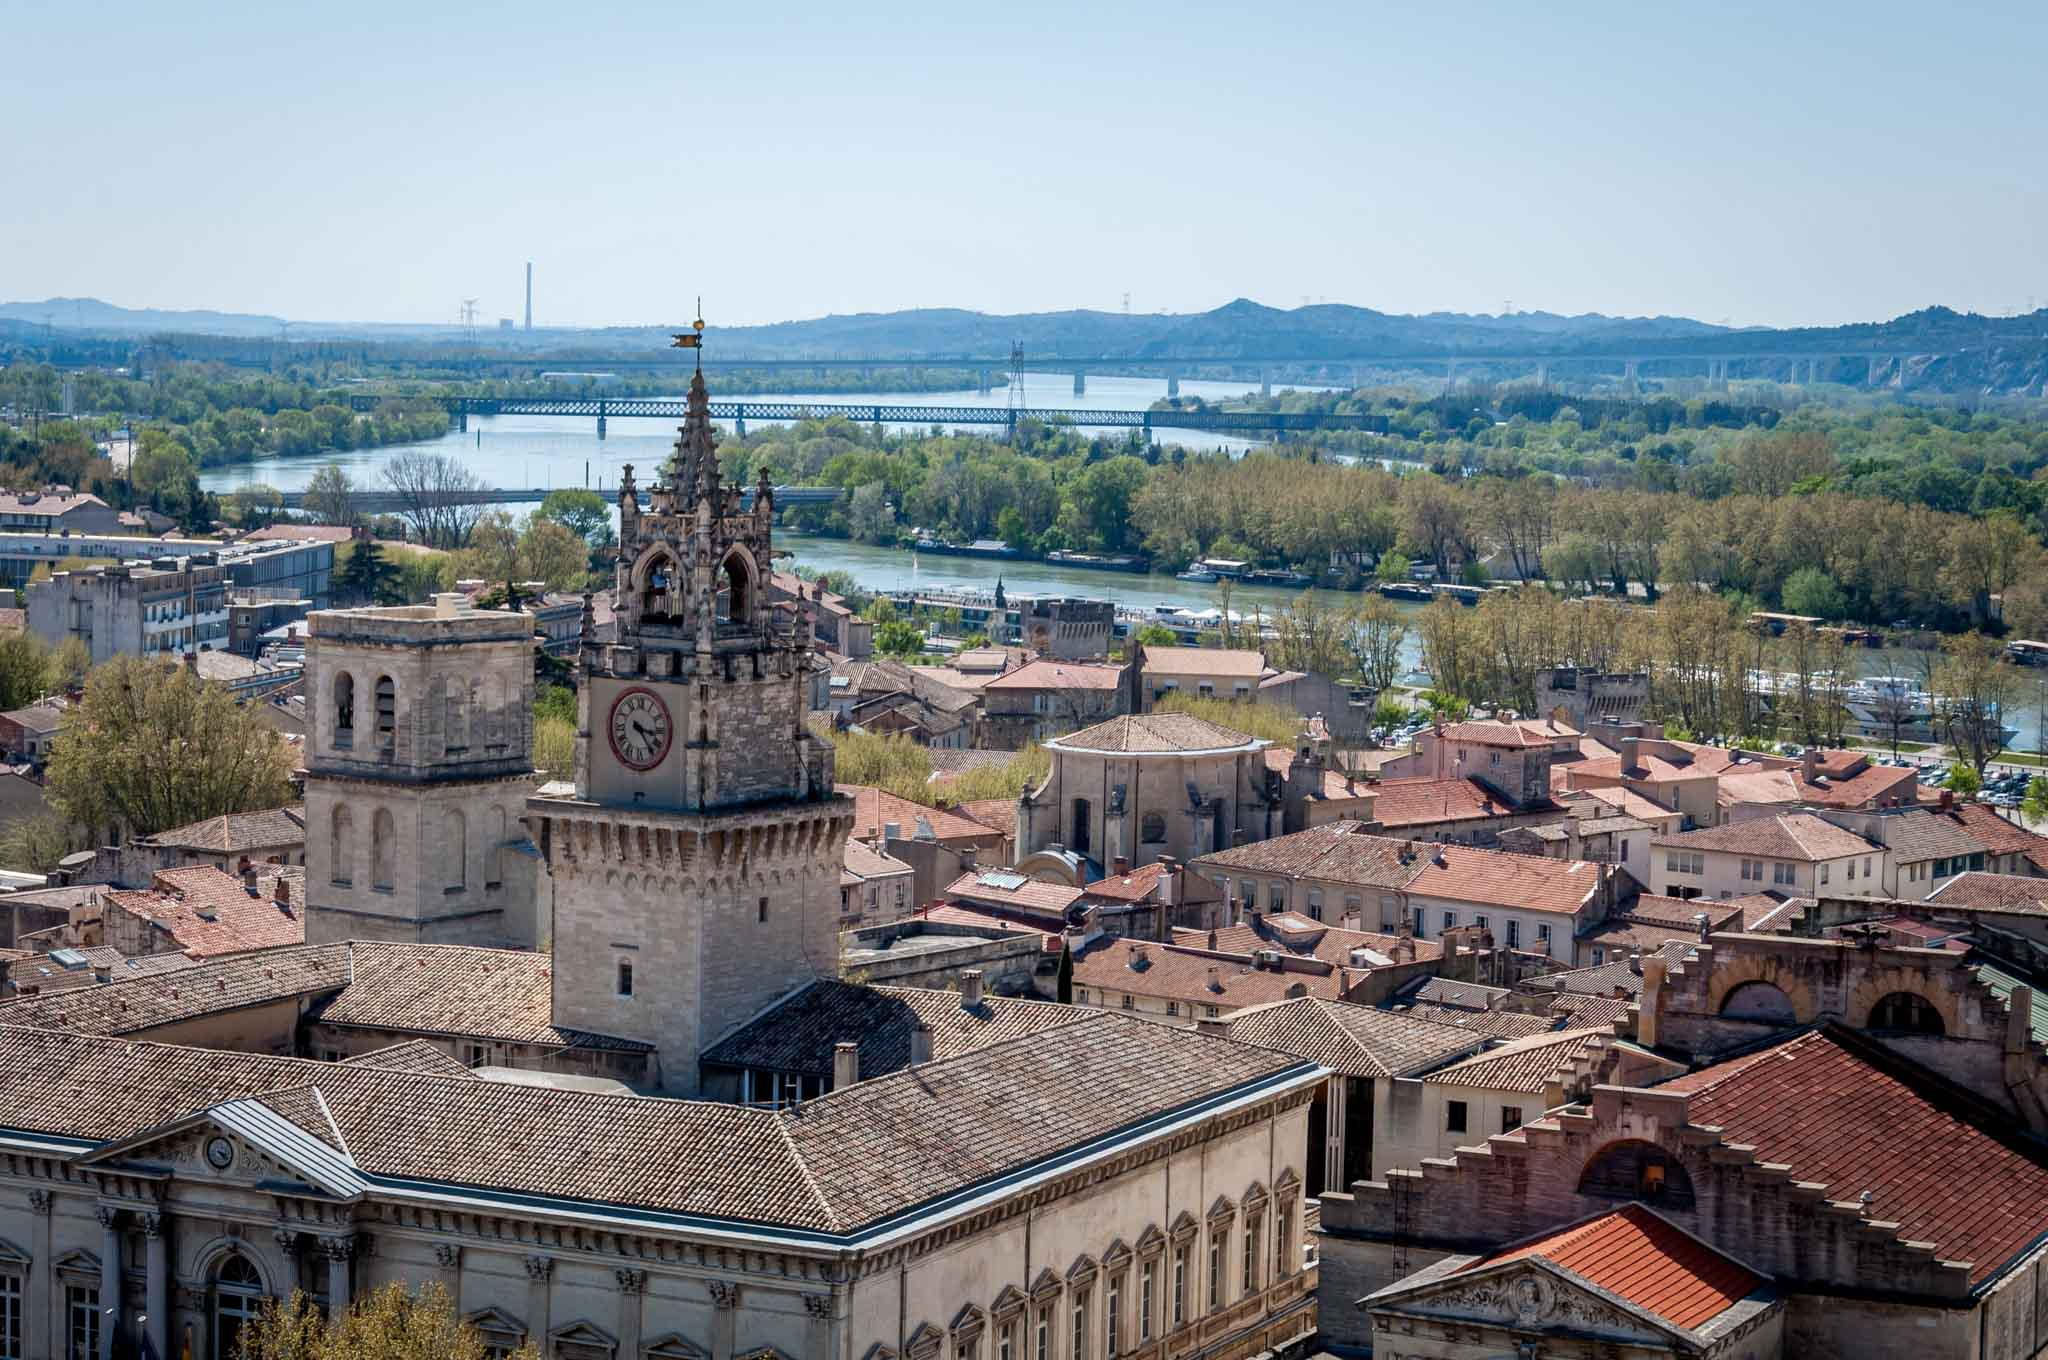 View of roofs of Avignon and river from the Palace of the Popes